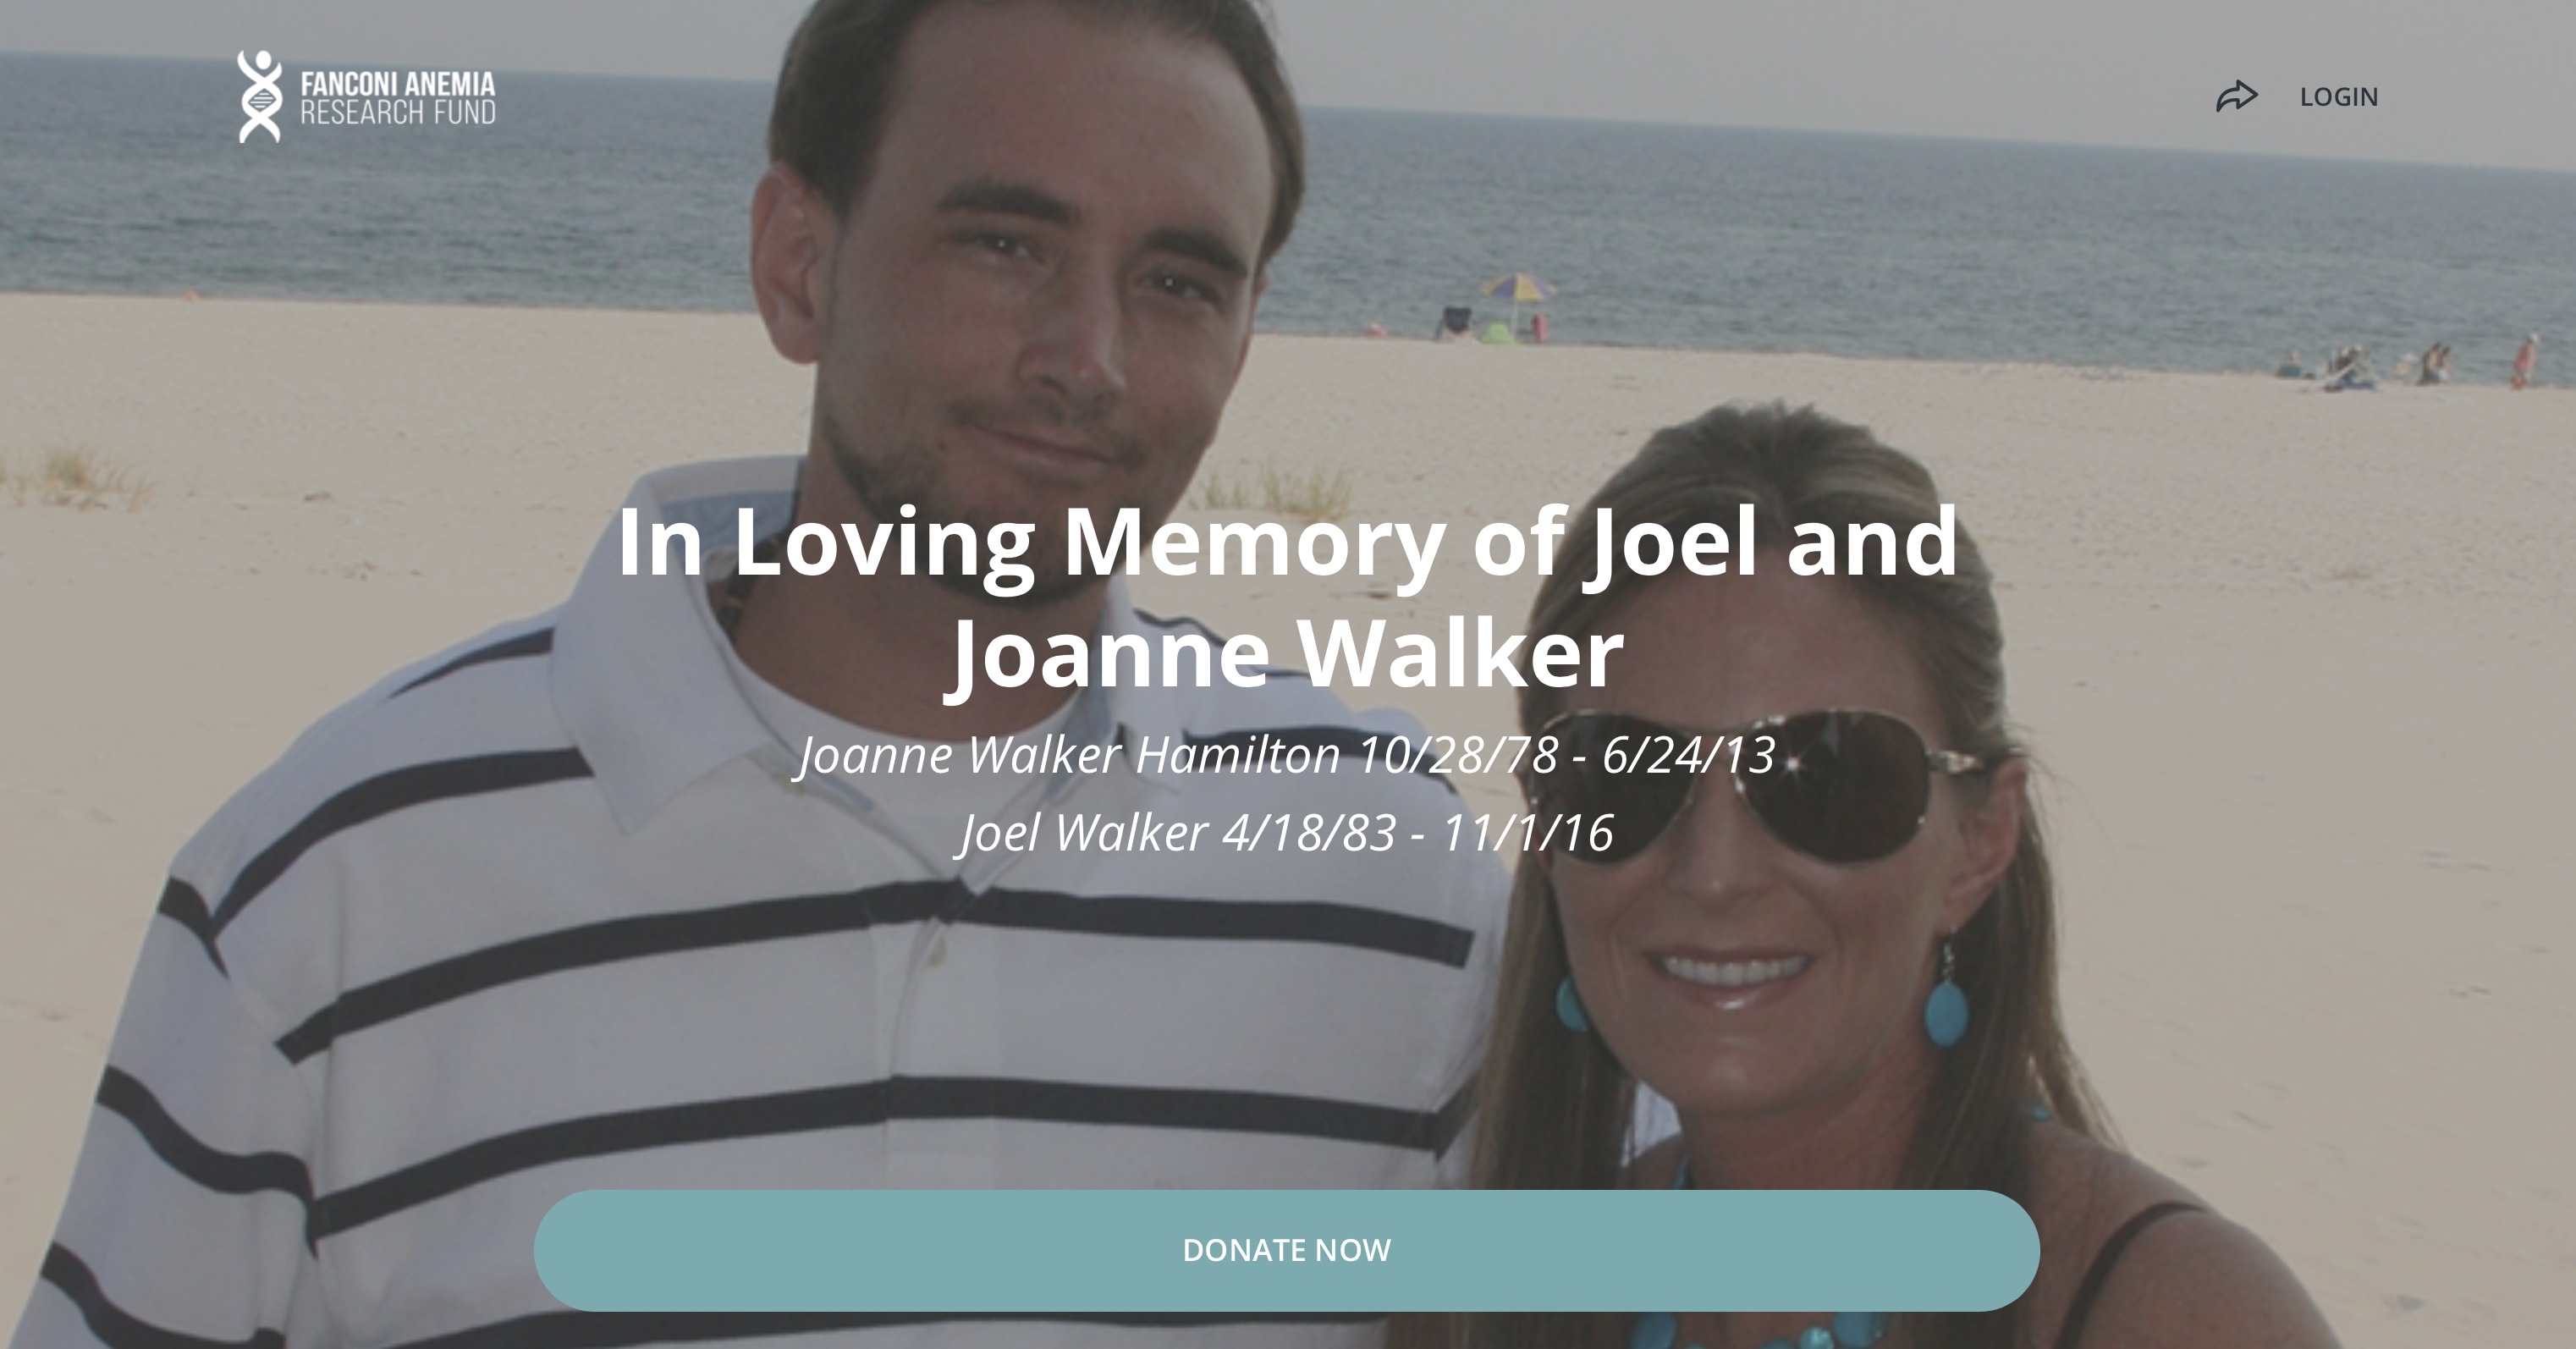 Joel and Joanne Walker